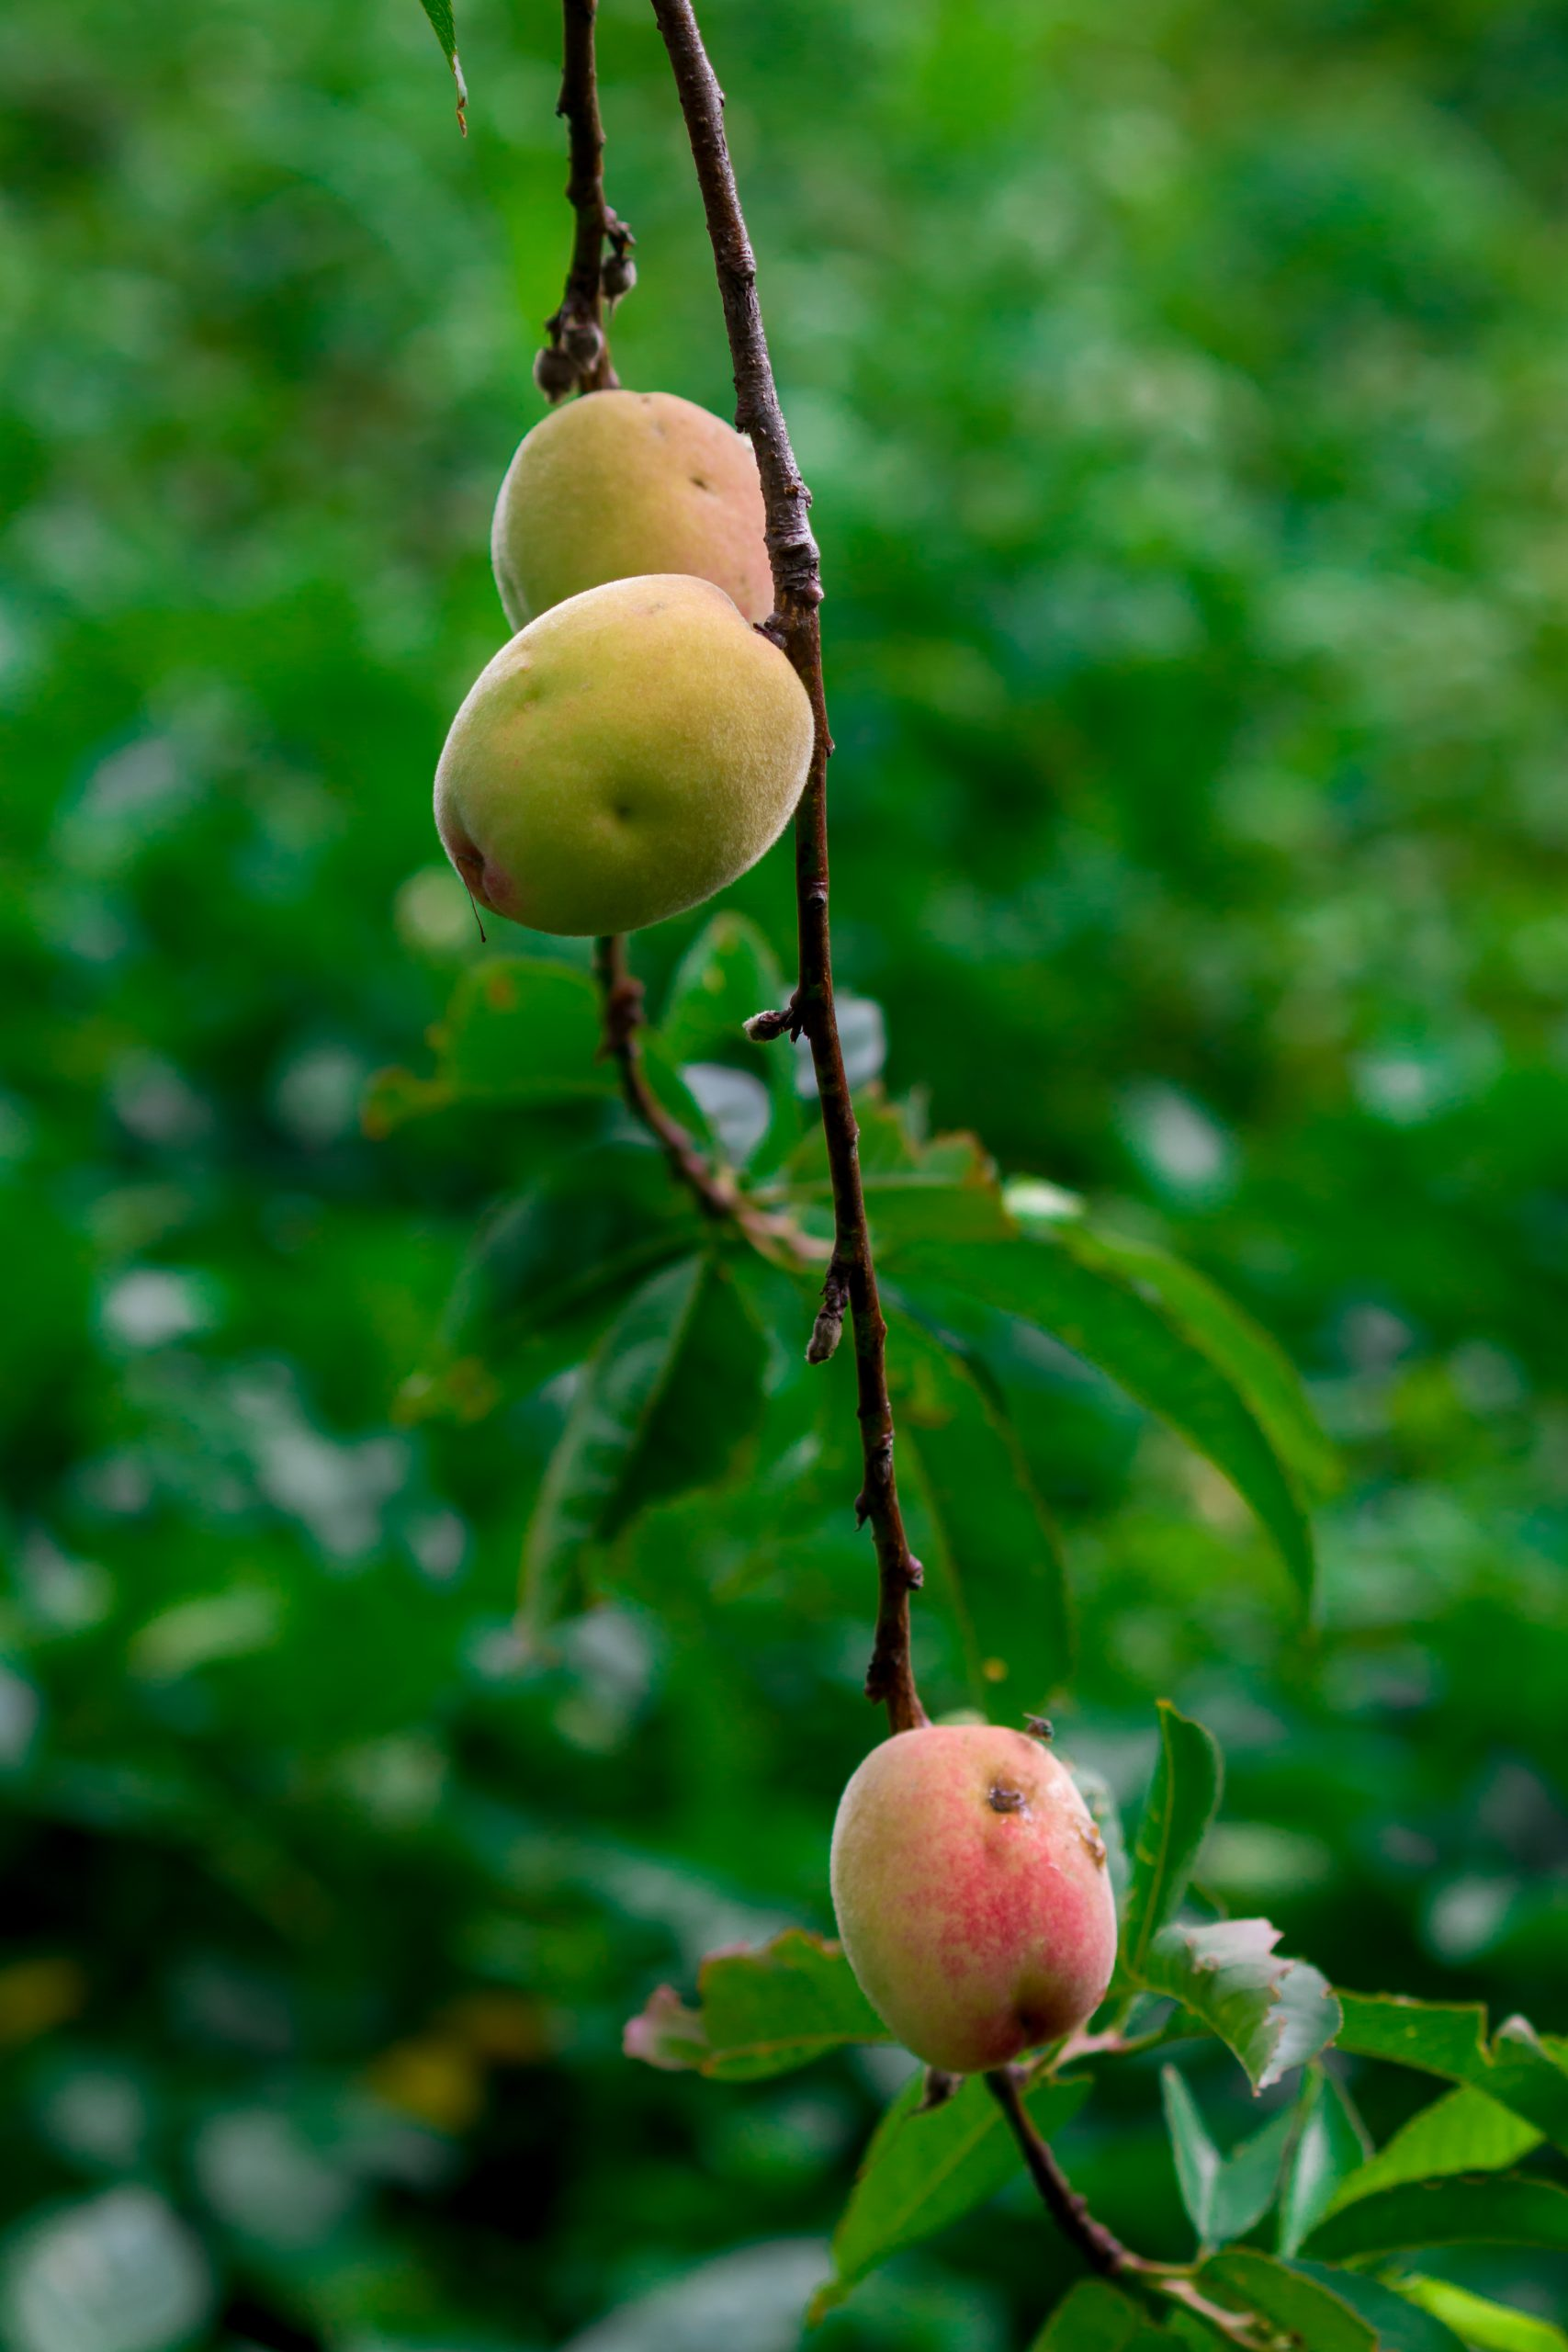 Peaches hanging on a tree